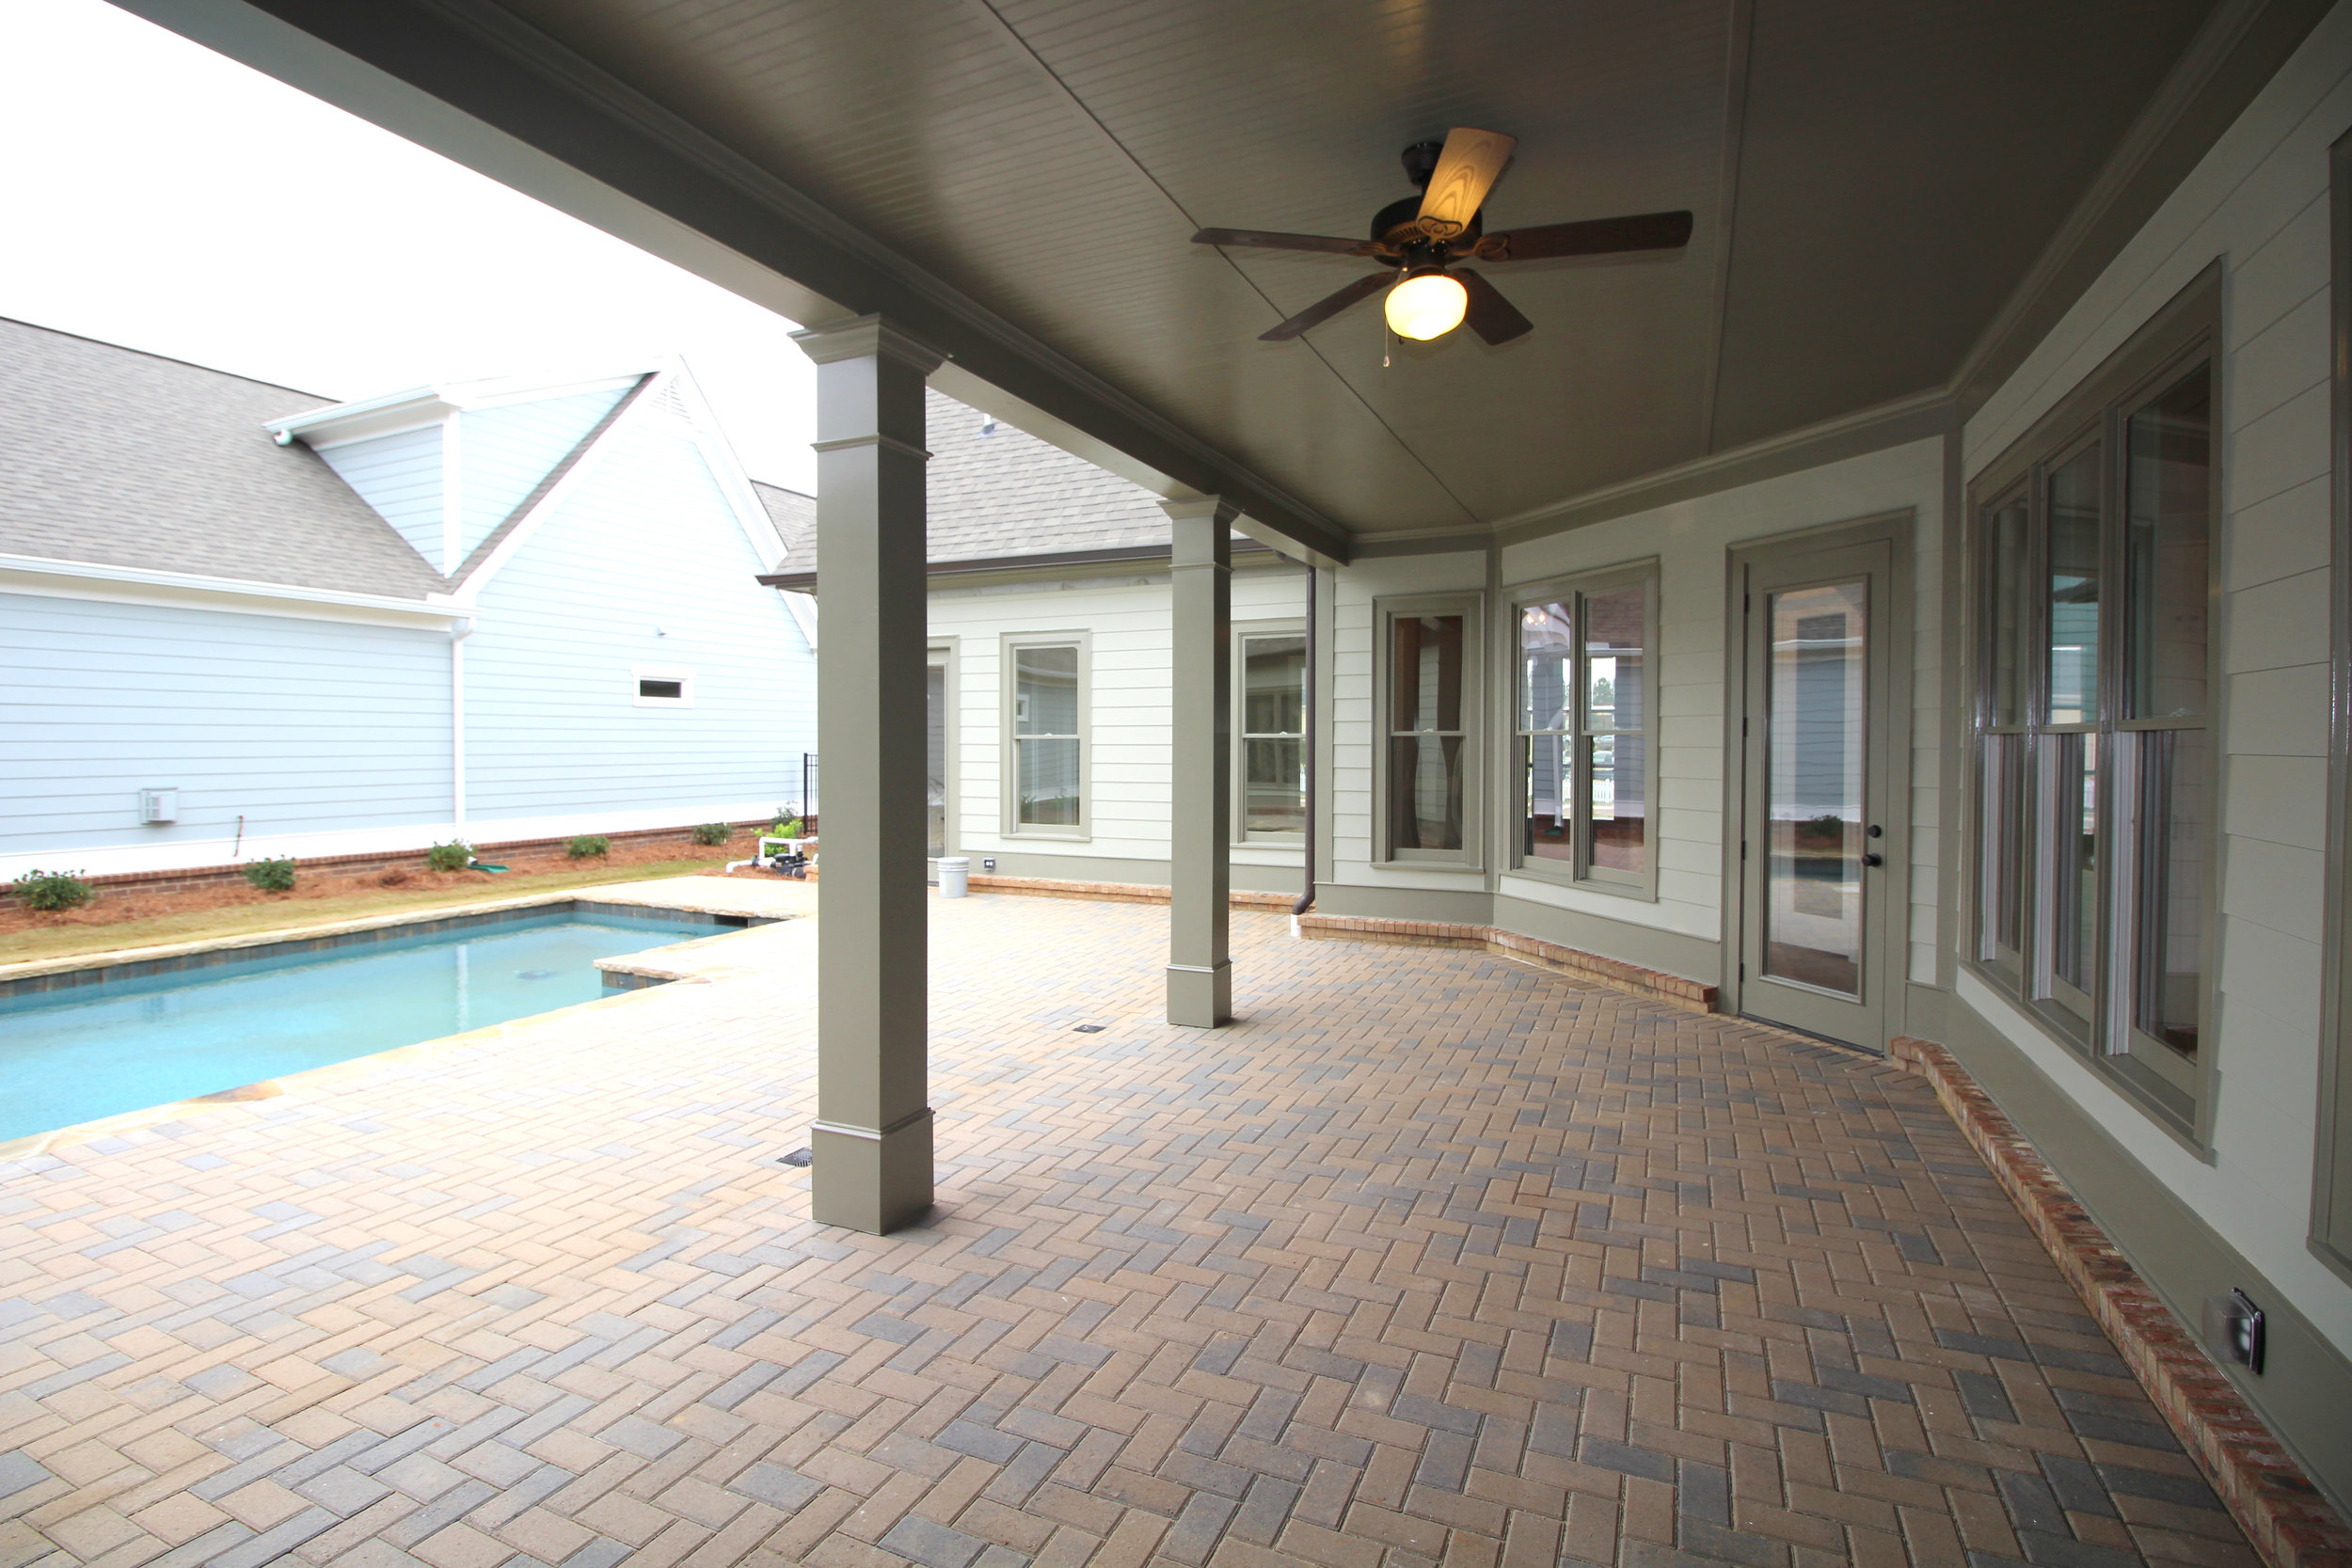 brick-paver-covered-back-porch-1756-greenleffe-drive-statham-ga-30666-the-georgia-club-oconee-county-oconee-springs-athens-area-home-for-sale-courtyard-homes.JPG